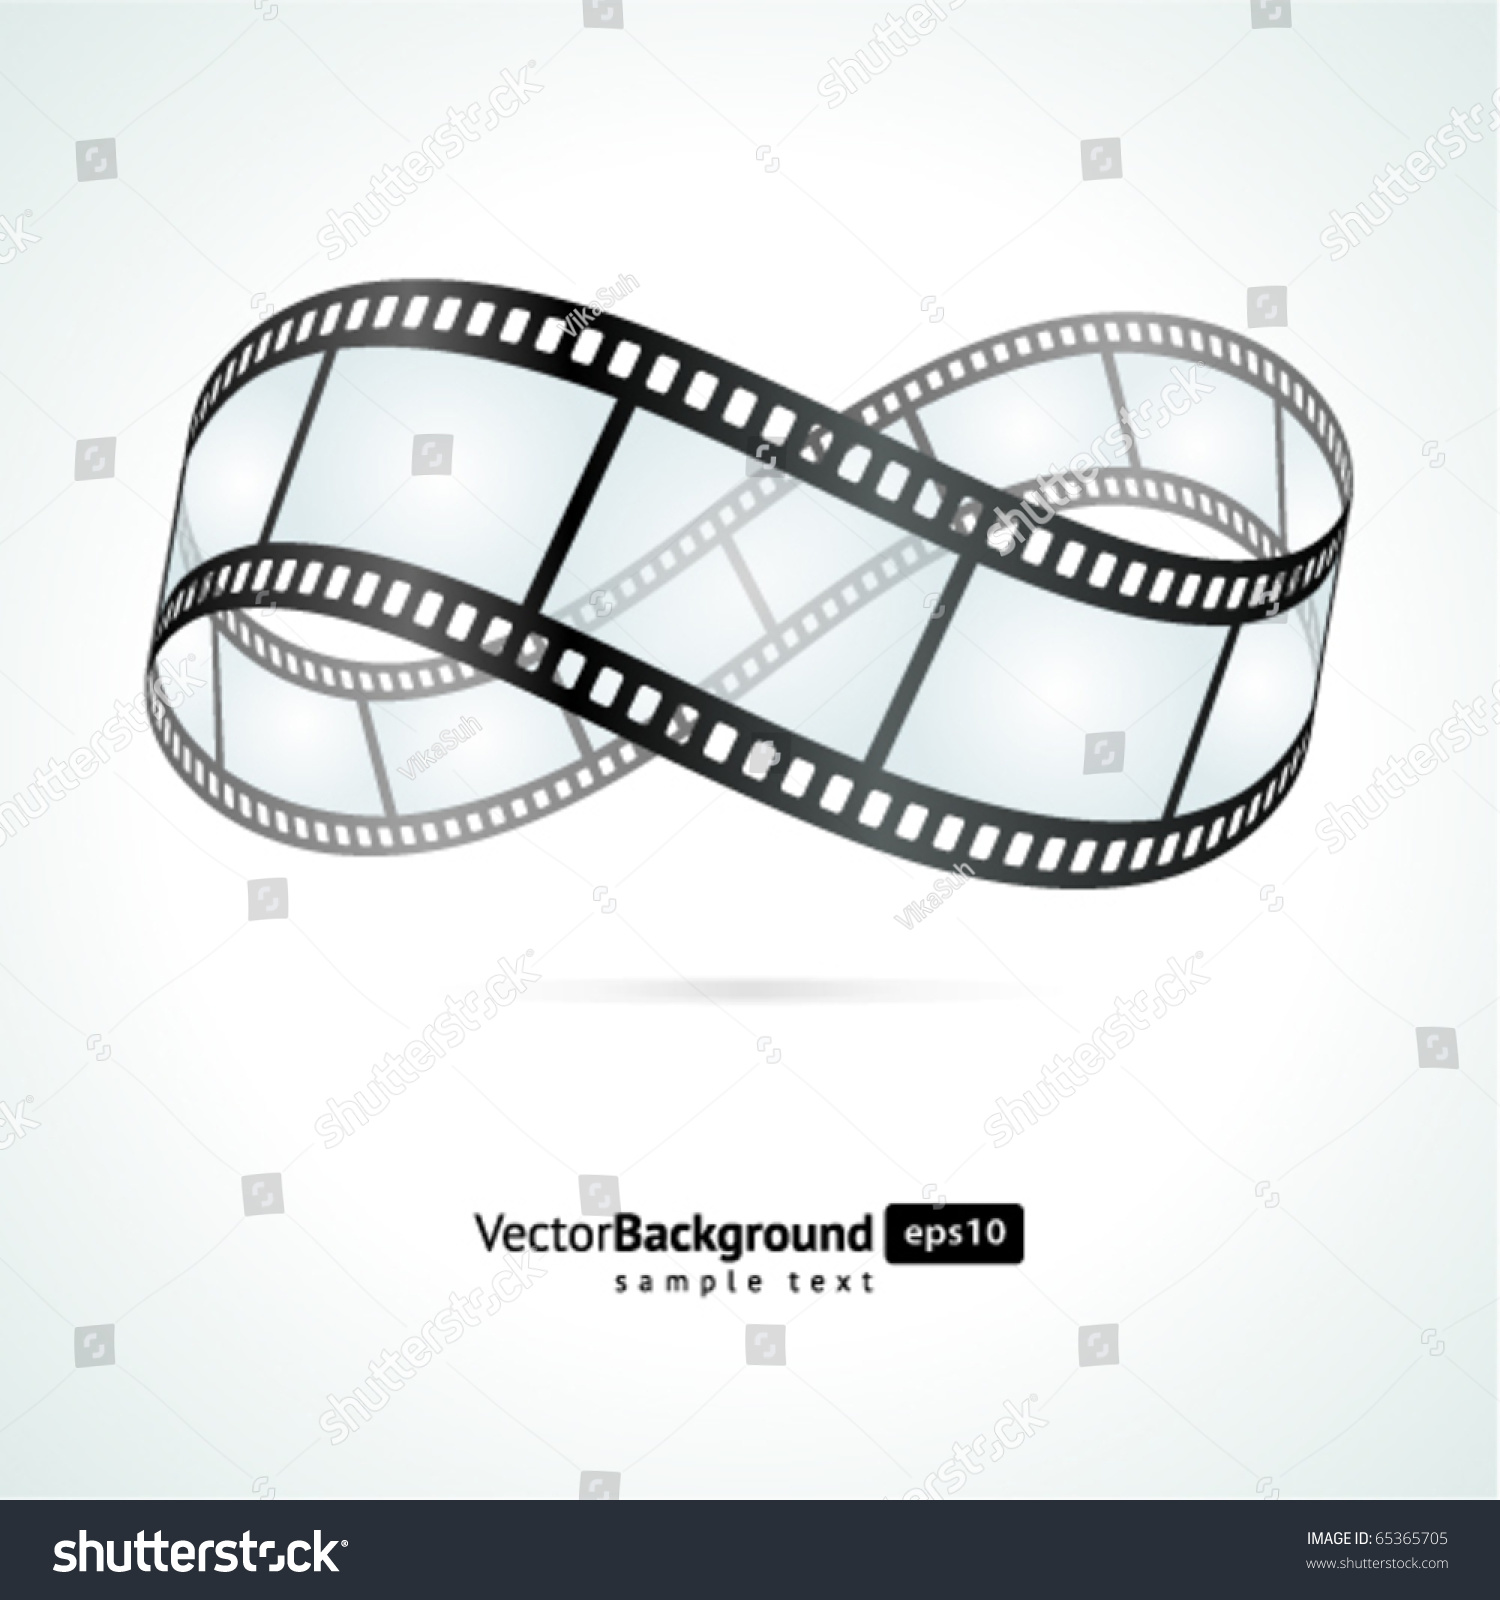 film strip infinity vector background stock vector royalty free 65365705 https www shutterstock com image vector film strip infinity vector background 65365705